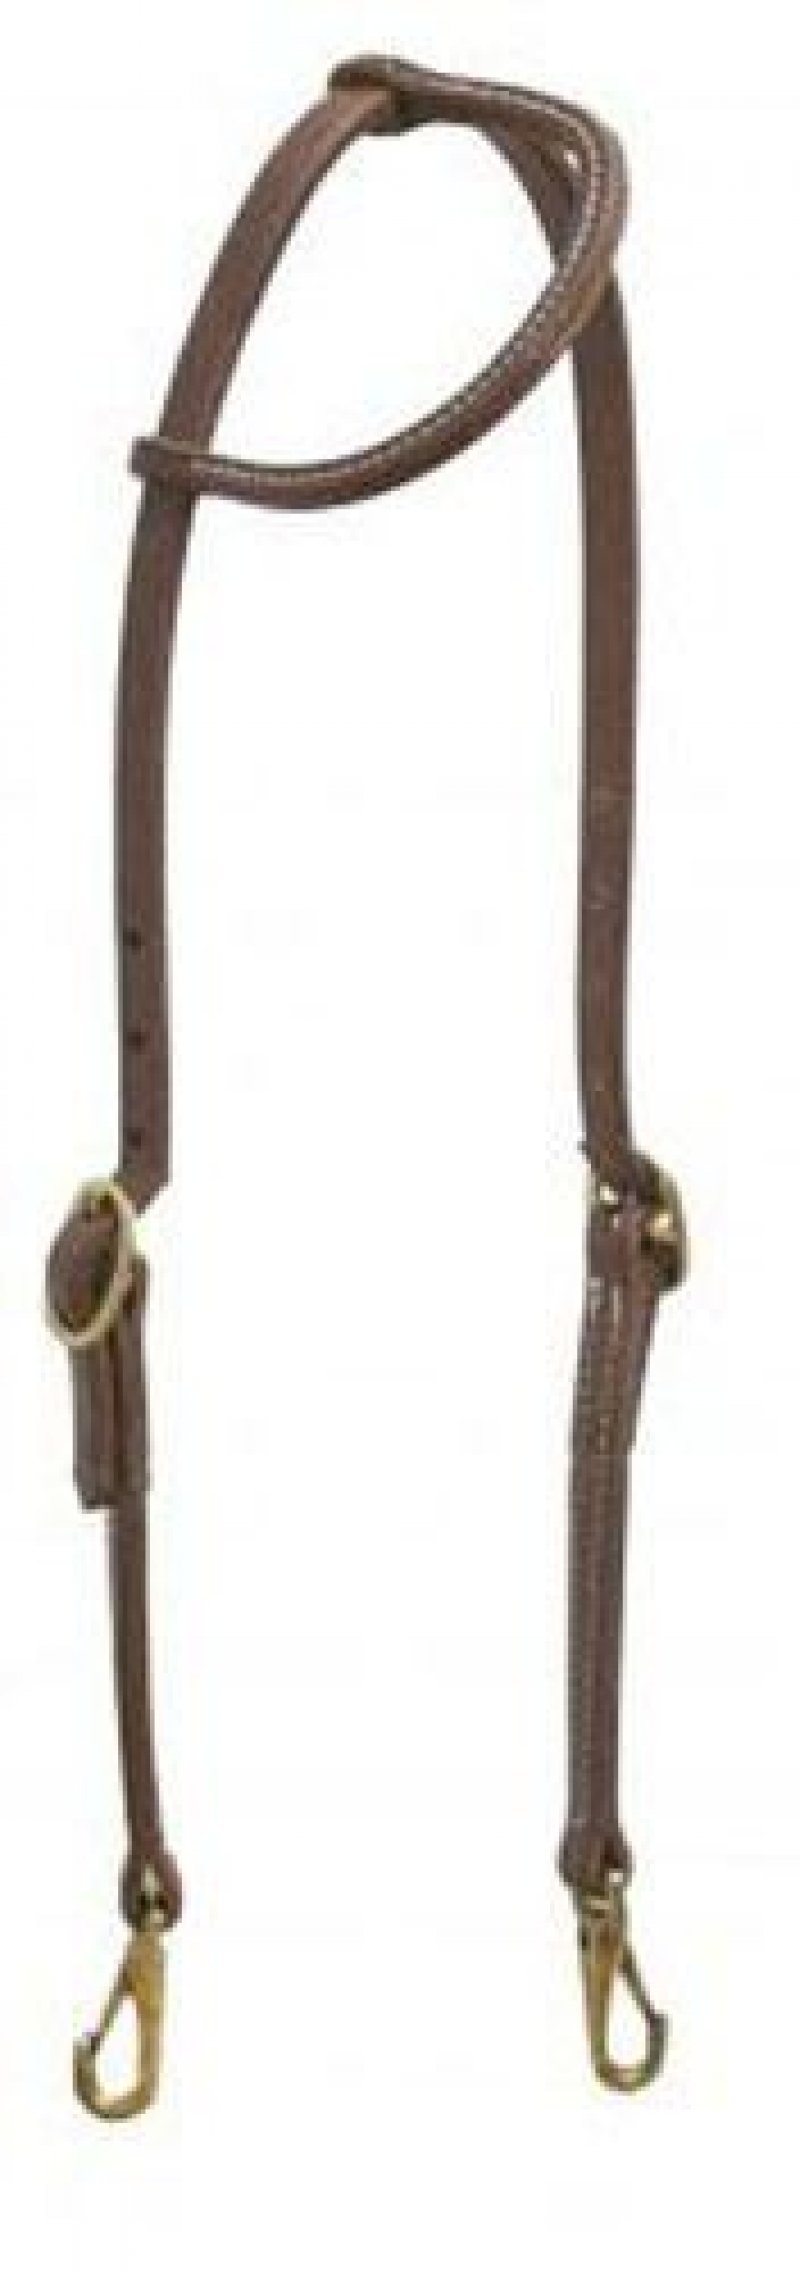 Double Buckle Slip Ear Headstall with Snaps